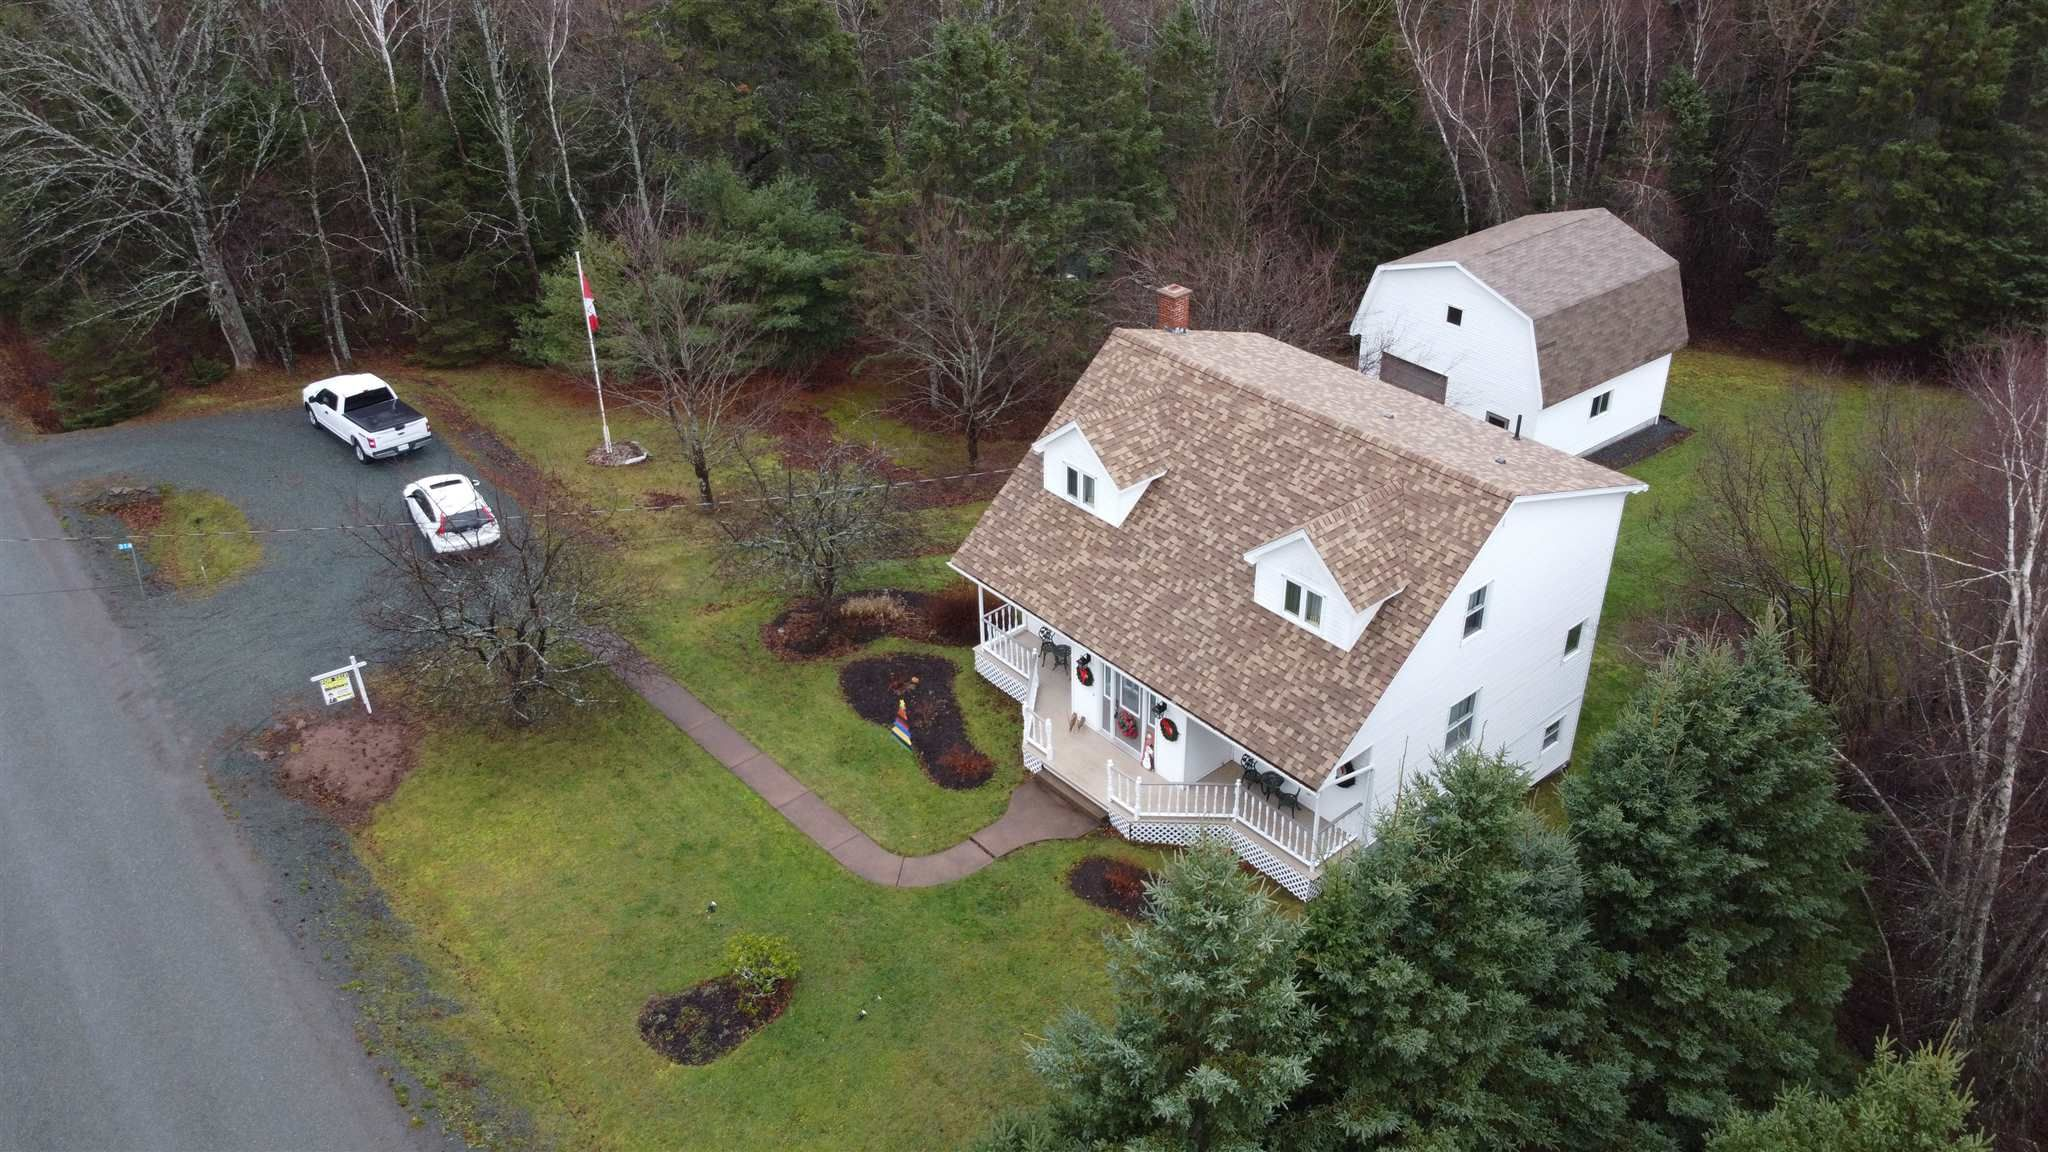 Main Photo: 314 Frasers Mountain Branch Road Road in Frasers Mountain: 108-Rural Pictou County Residential for sale (Northern Region)  : MLS®# 202025324